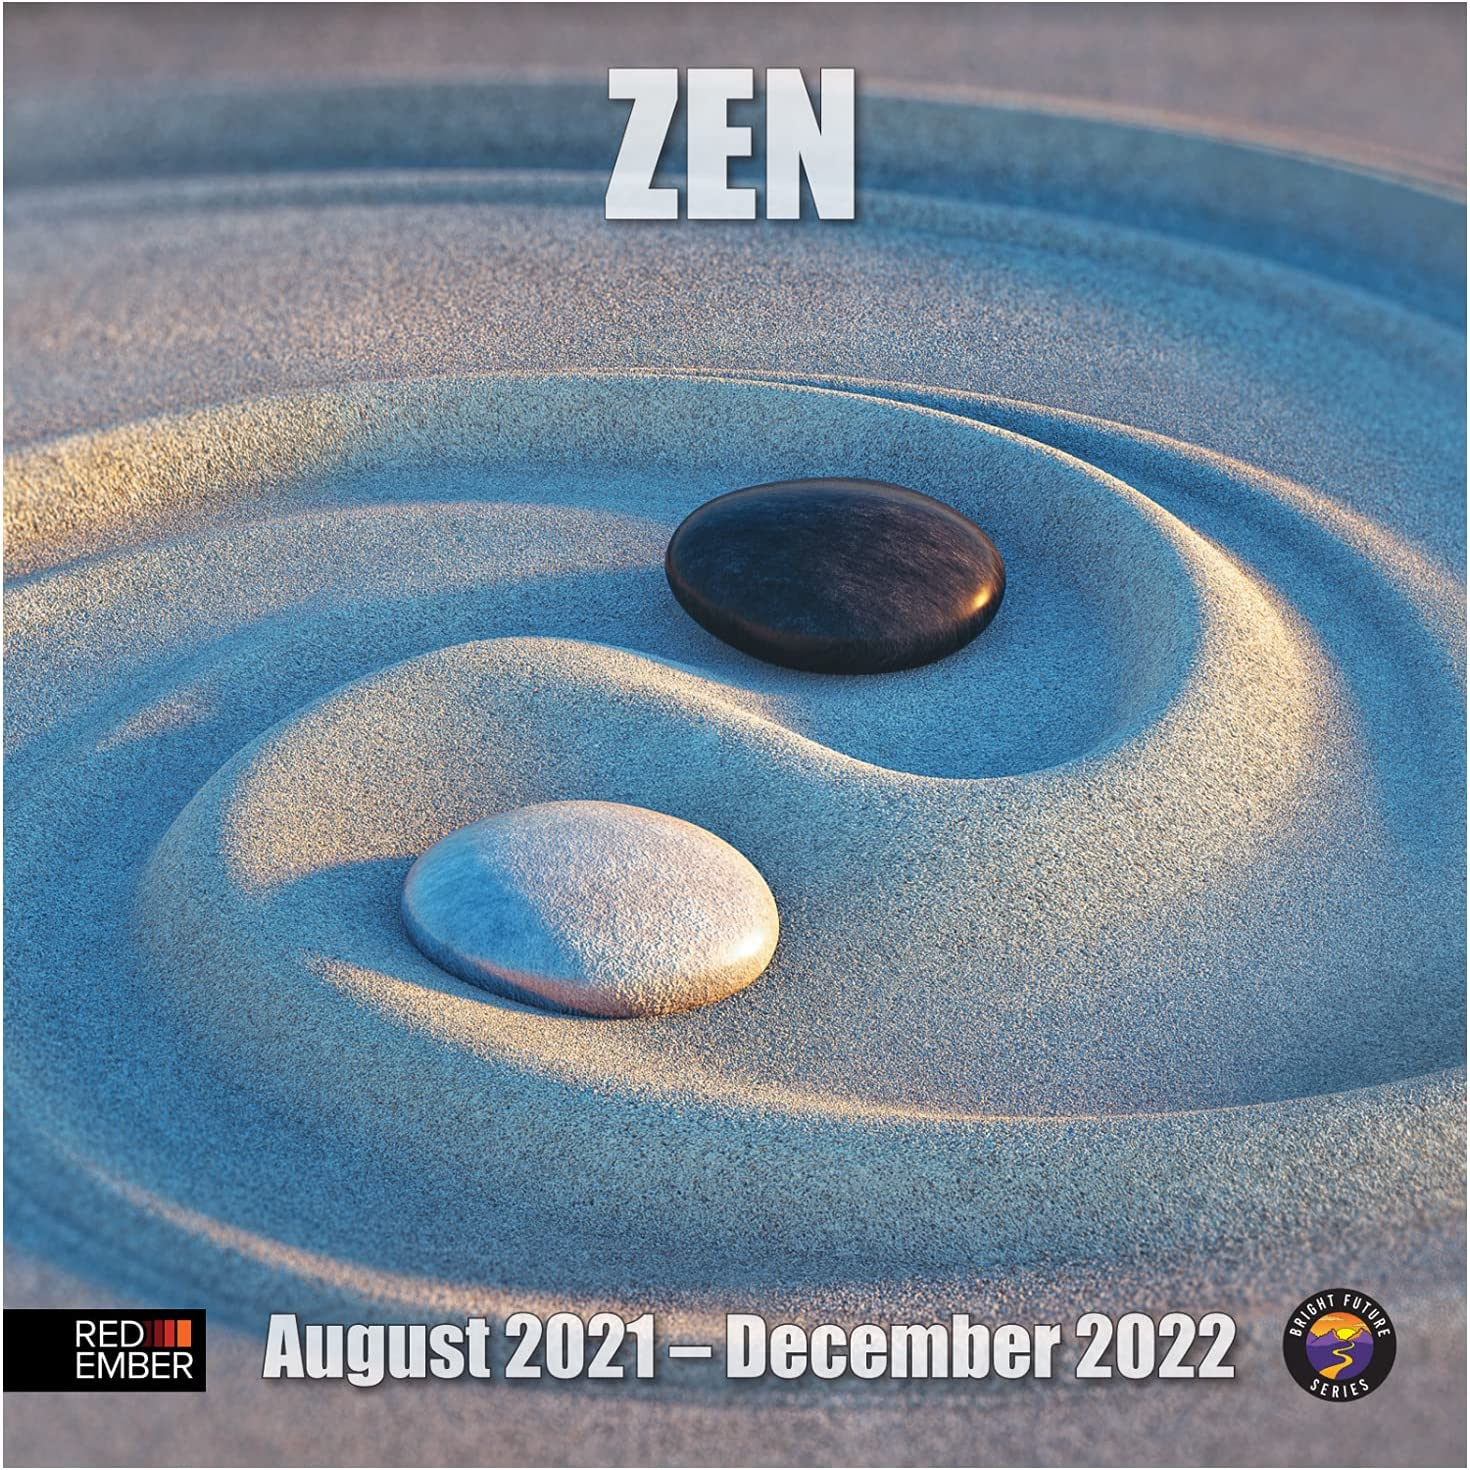 RED EMBER Zen (Deluxe Edition) Hangable Wall Calendar - August 2021 to Dec 2022 - 17 Full Page Months - 12 in. x 24 Inches When Open - Thick & Sturdy Glossy Paper - Set a Peaceful Mood